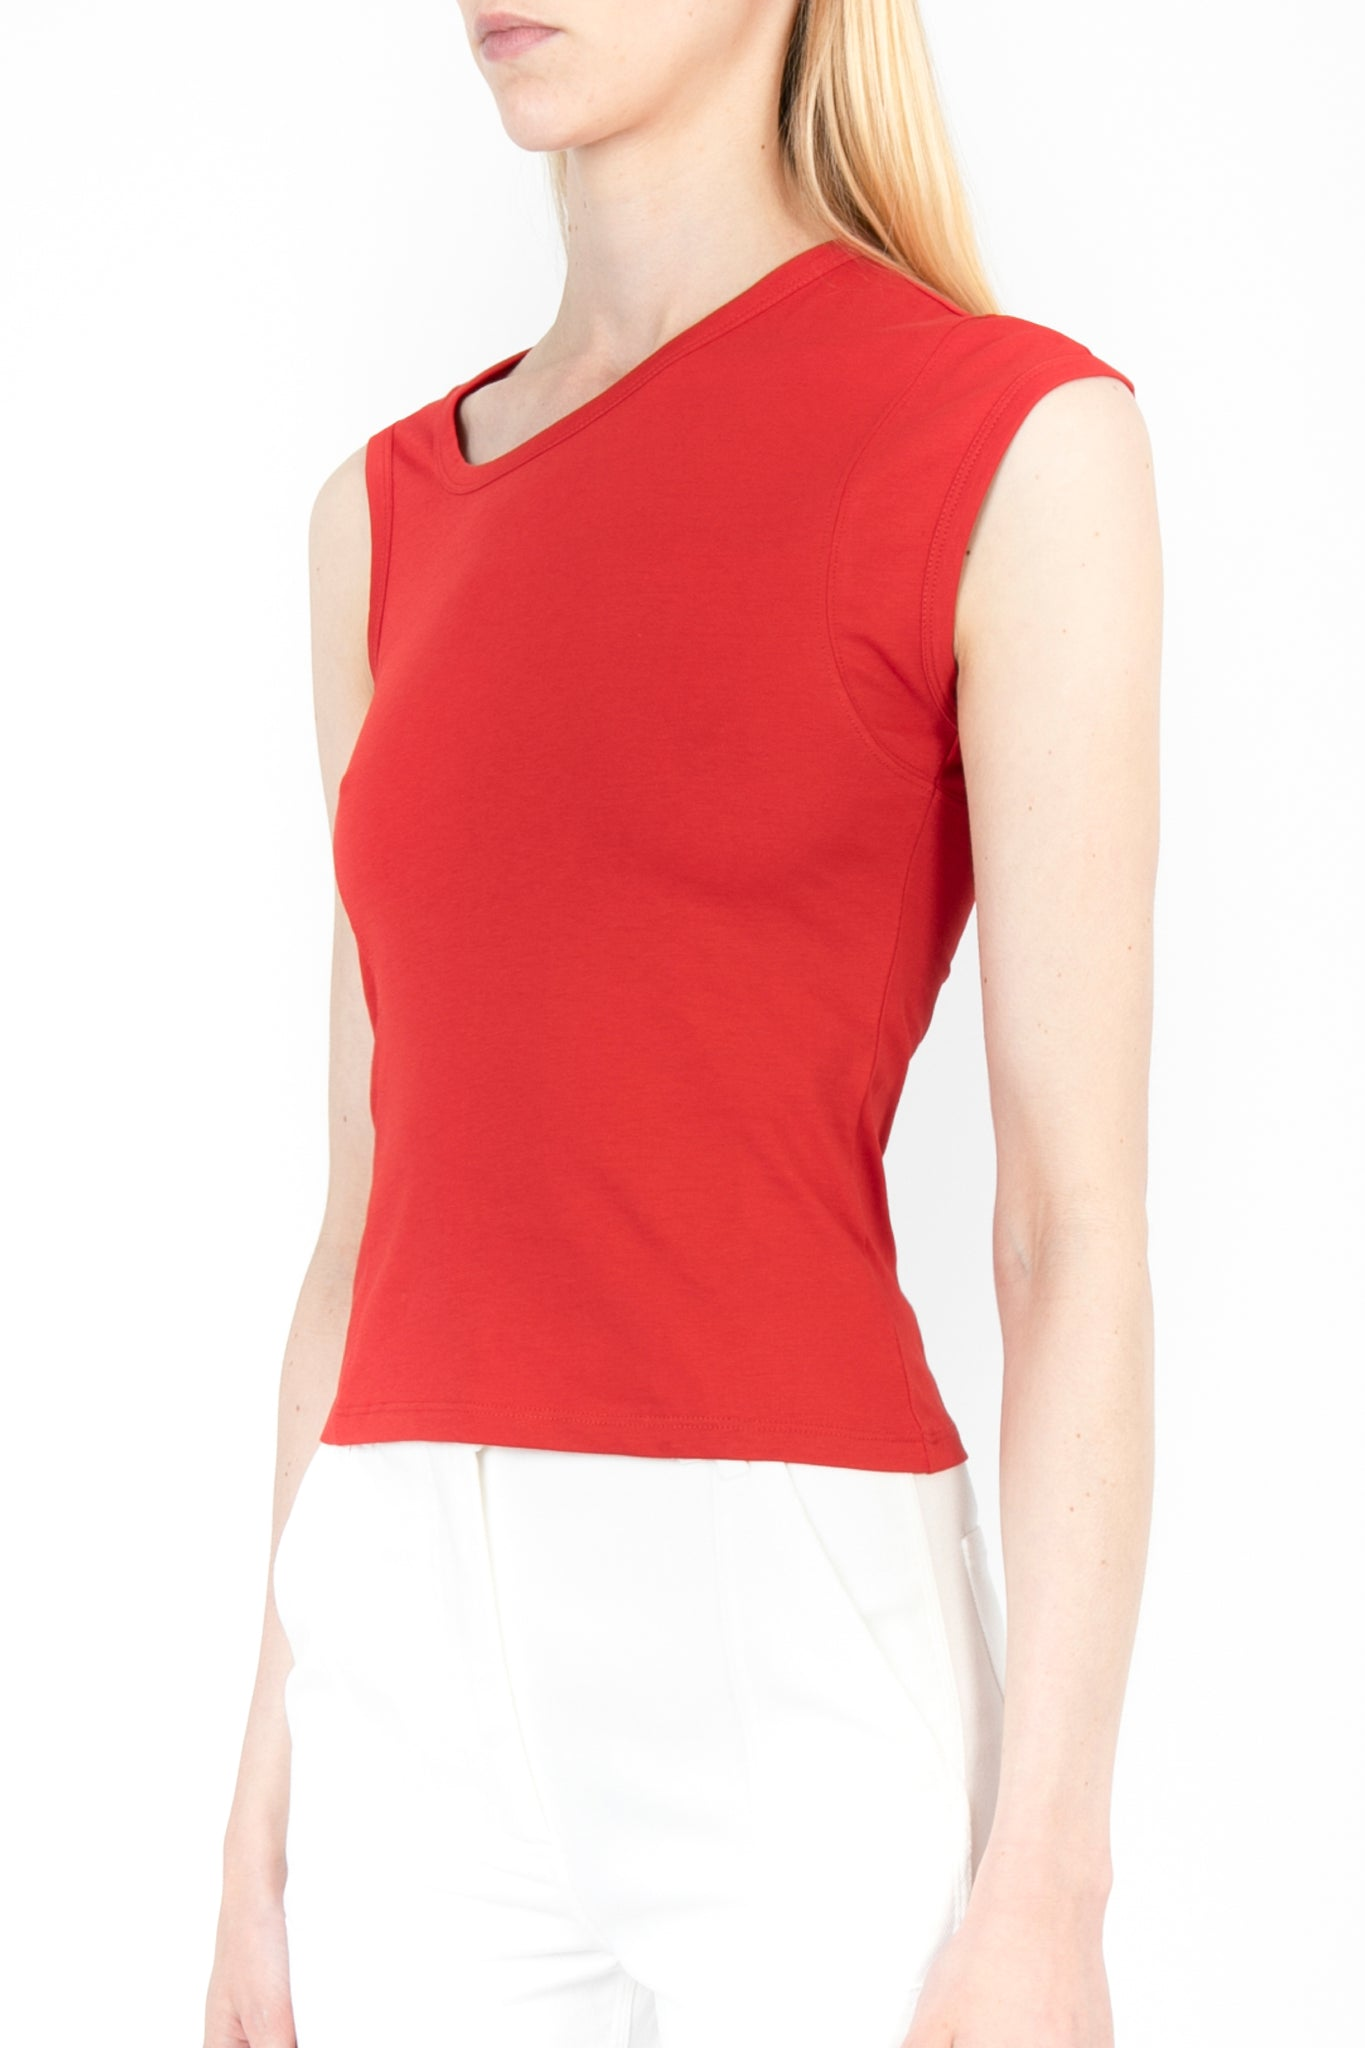 Asymmetric Sleeveless Cotton Top - Exclusive